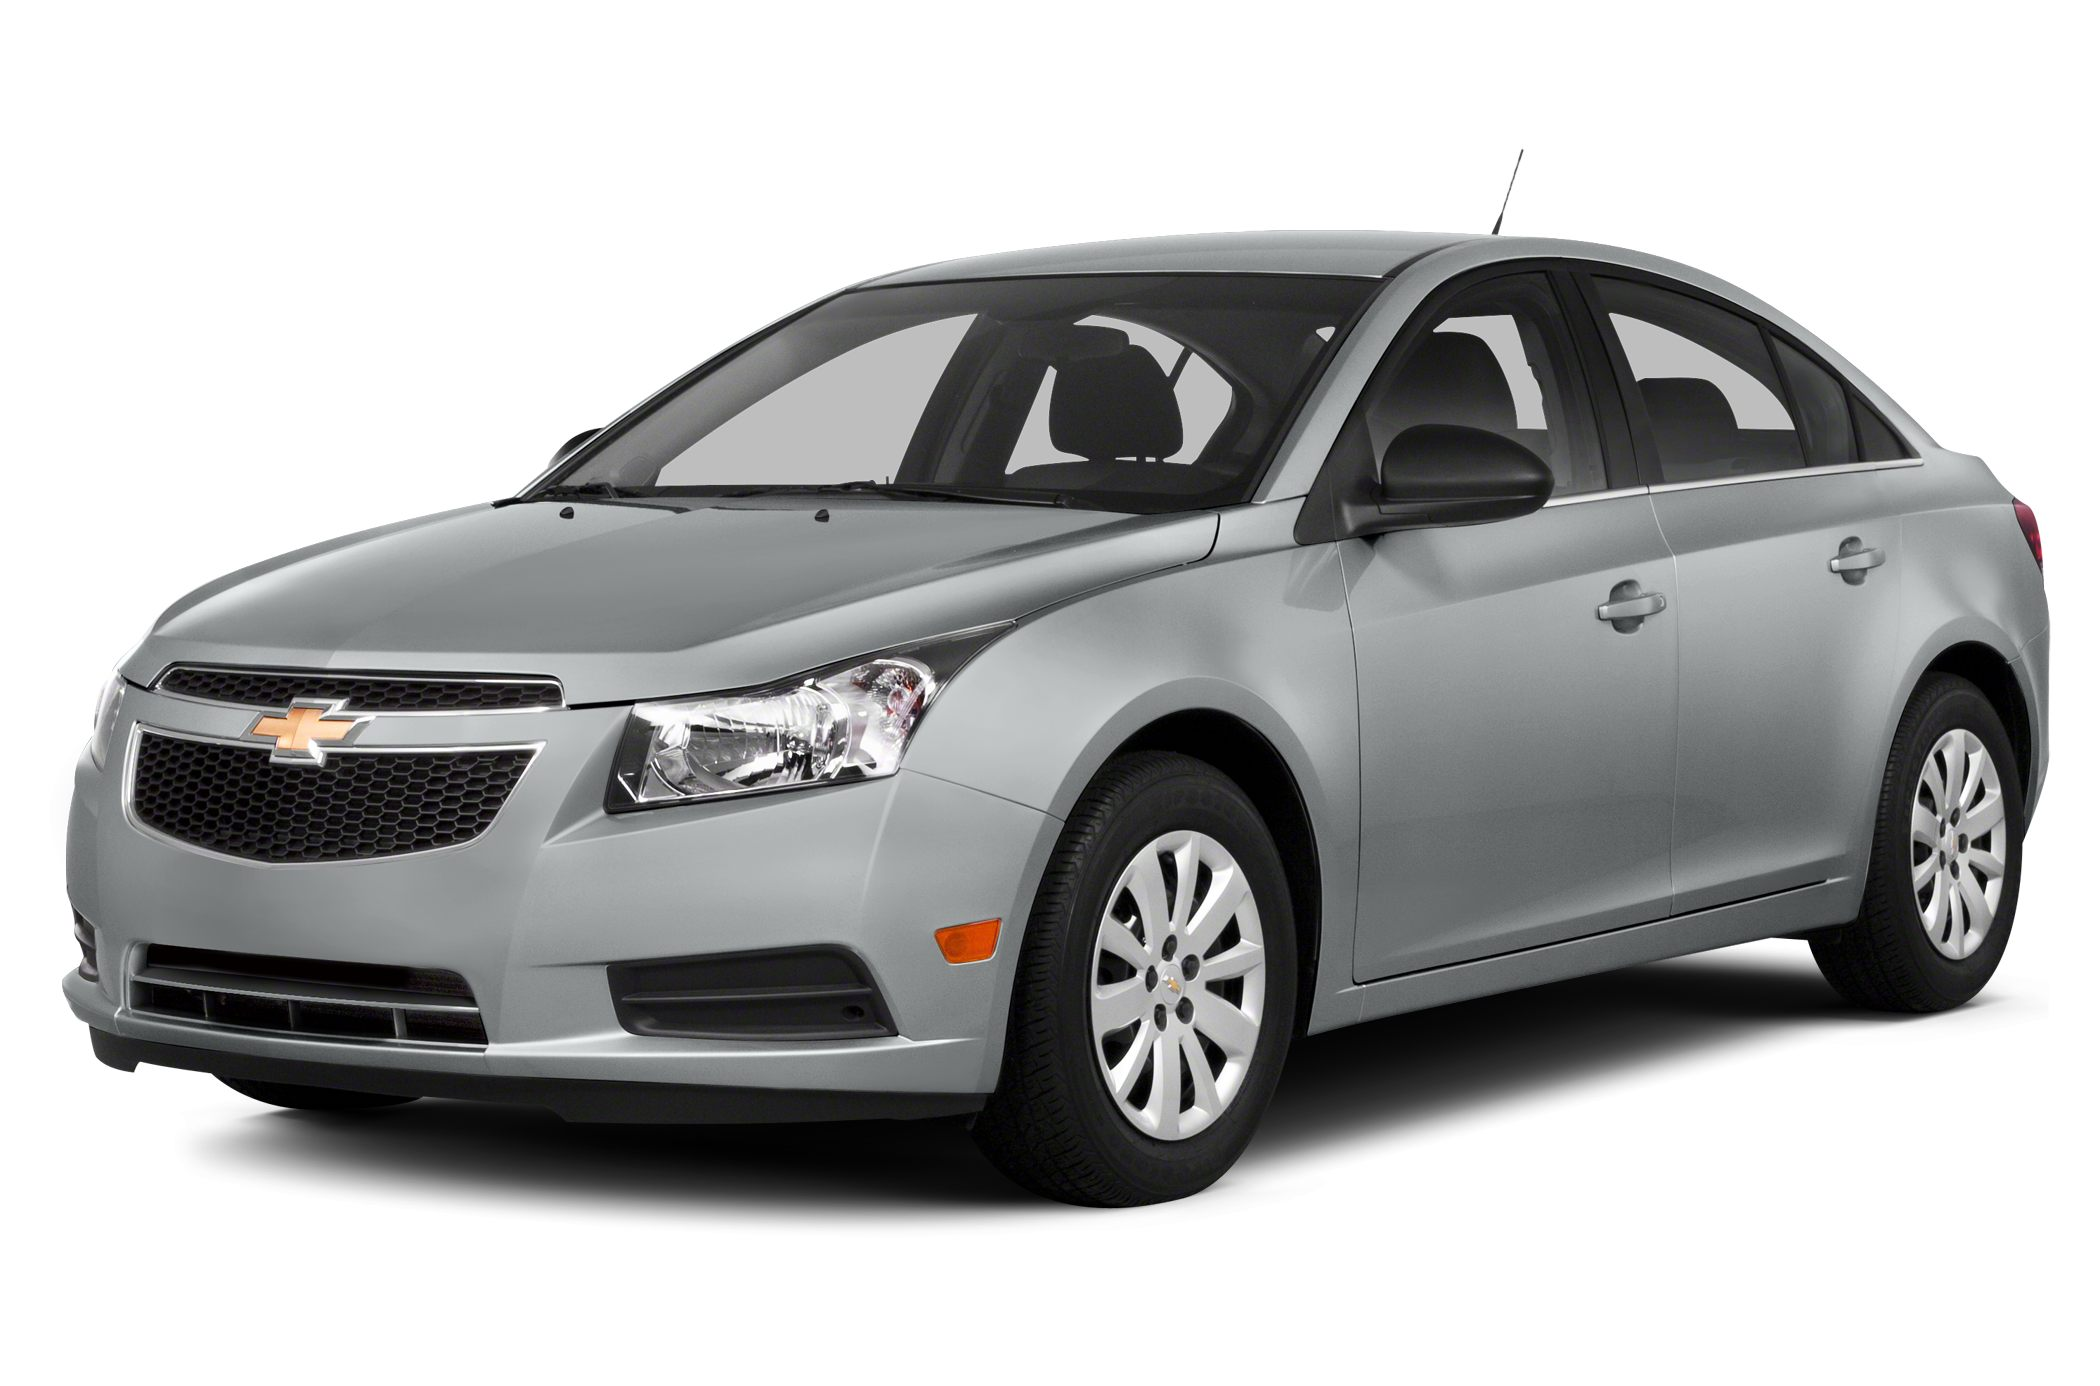 2014 Chevrolet Cruze 1LT Sedan for sale in Potsdam for $21,045 with 0 miles